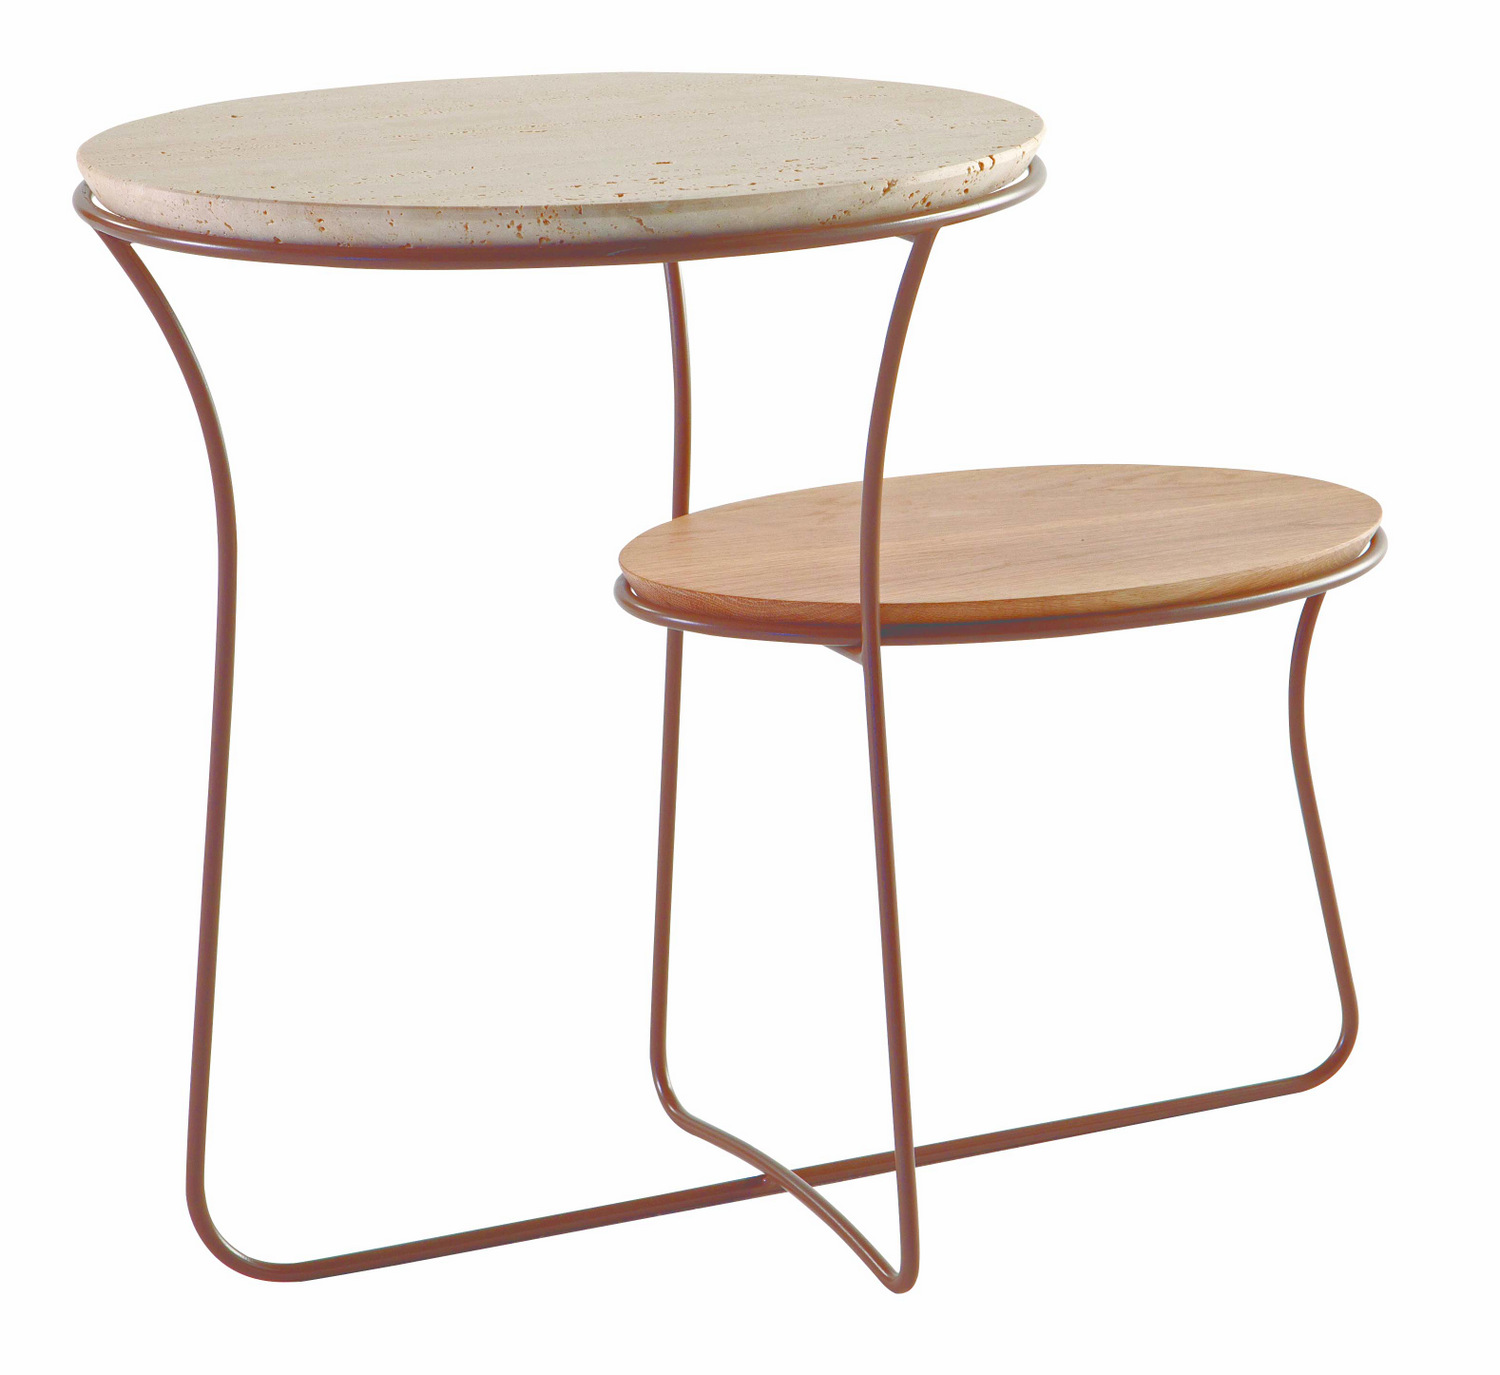 Coffee table oris by roche bobois design christophe delcourt for Table extensible roche bobois